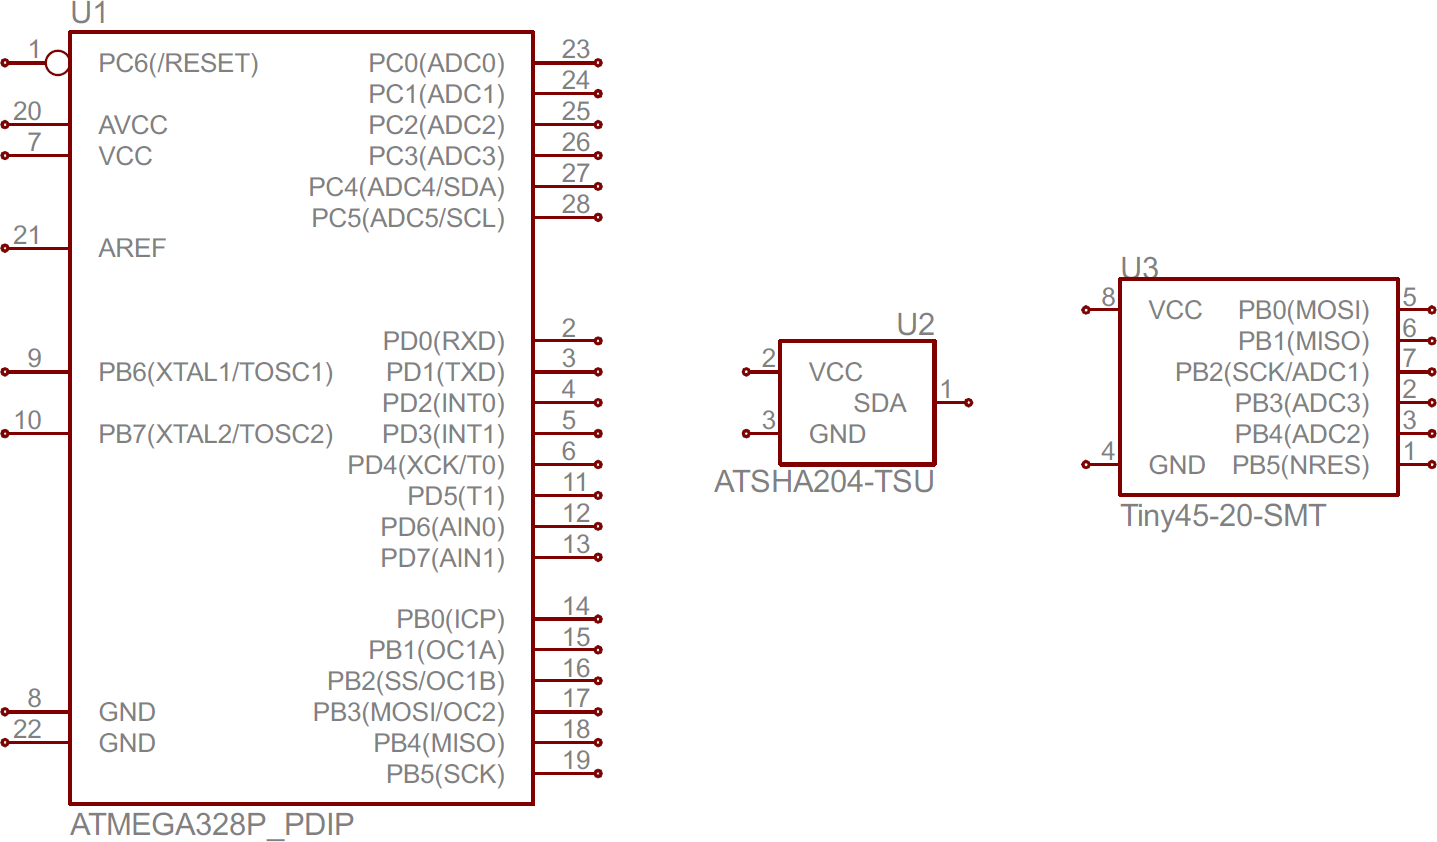 51cc9e55ce395f7f69000001 how to read a schematic learn sparkfun com schematic wiring diagram at nearapp.co